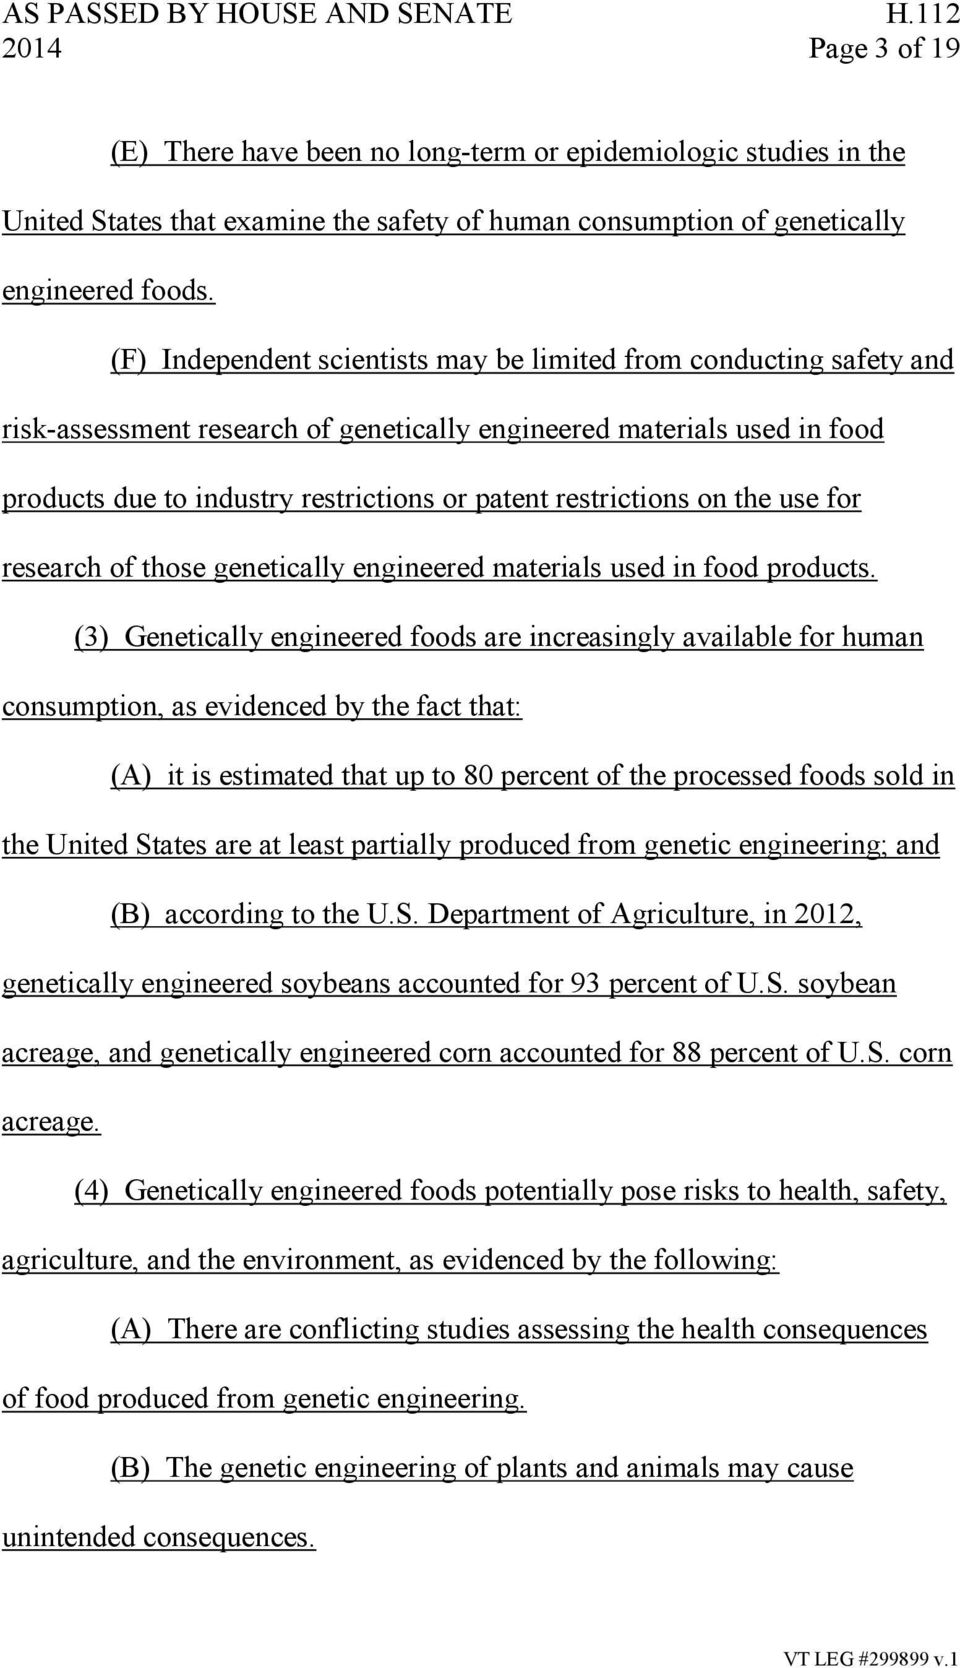 restrictions on the use for research of those genetically engineered materials used in food products.